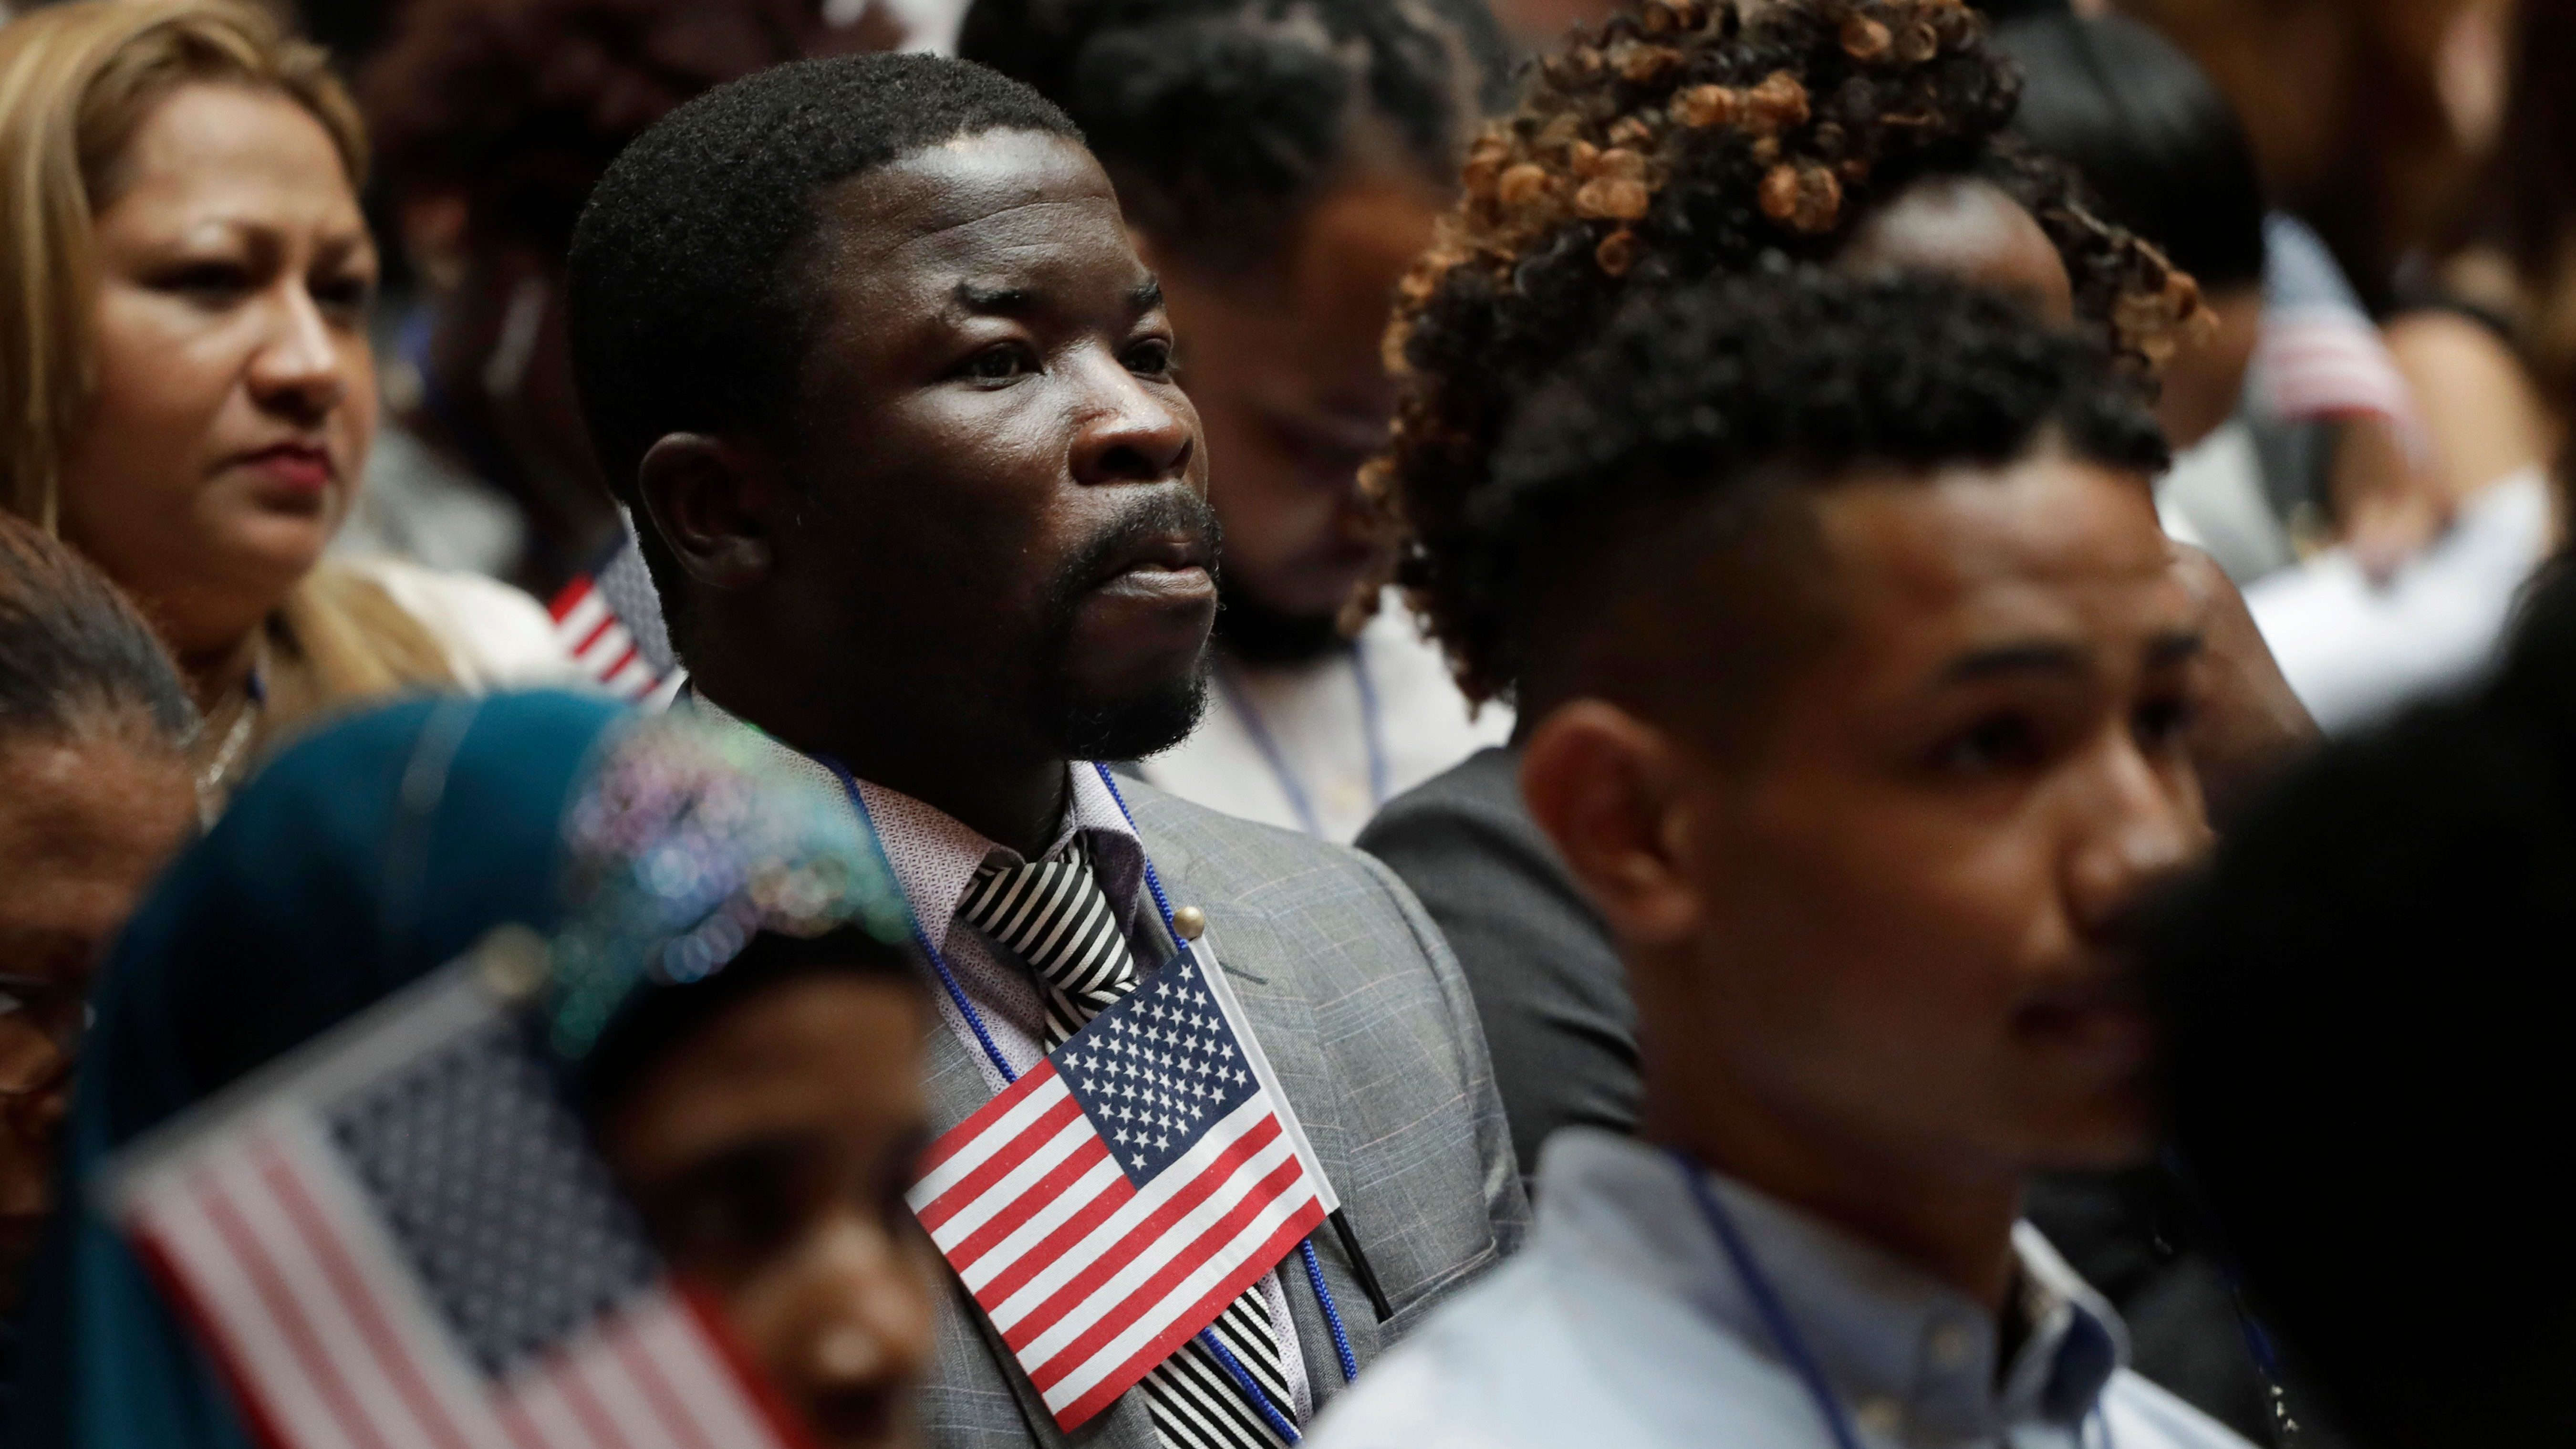 An unidentified man listens during a US naturalization ceremony